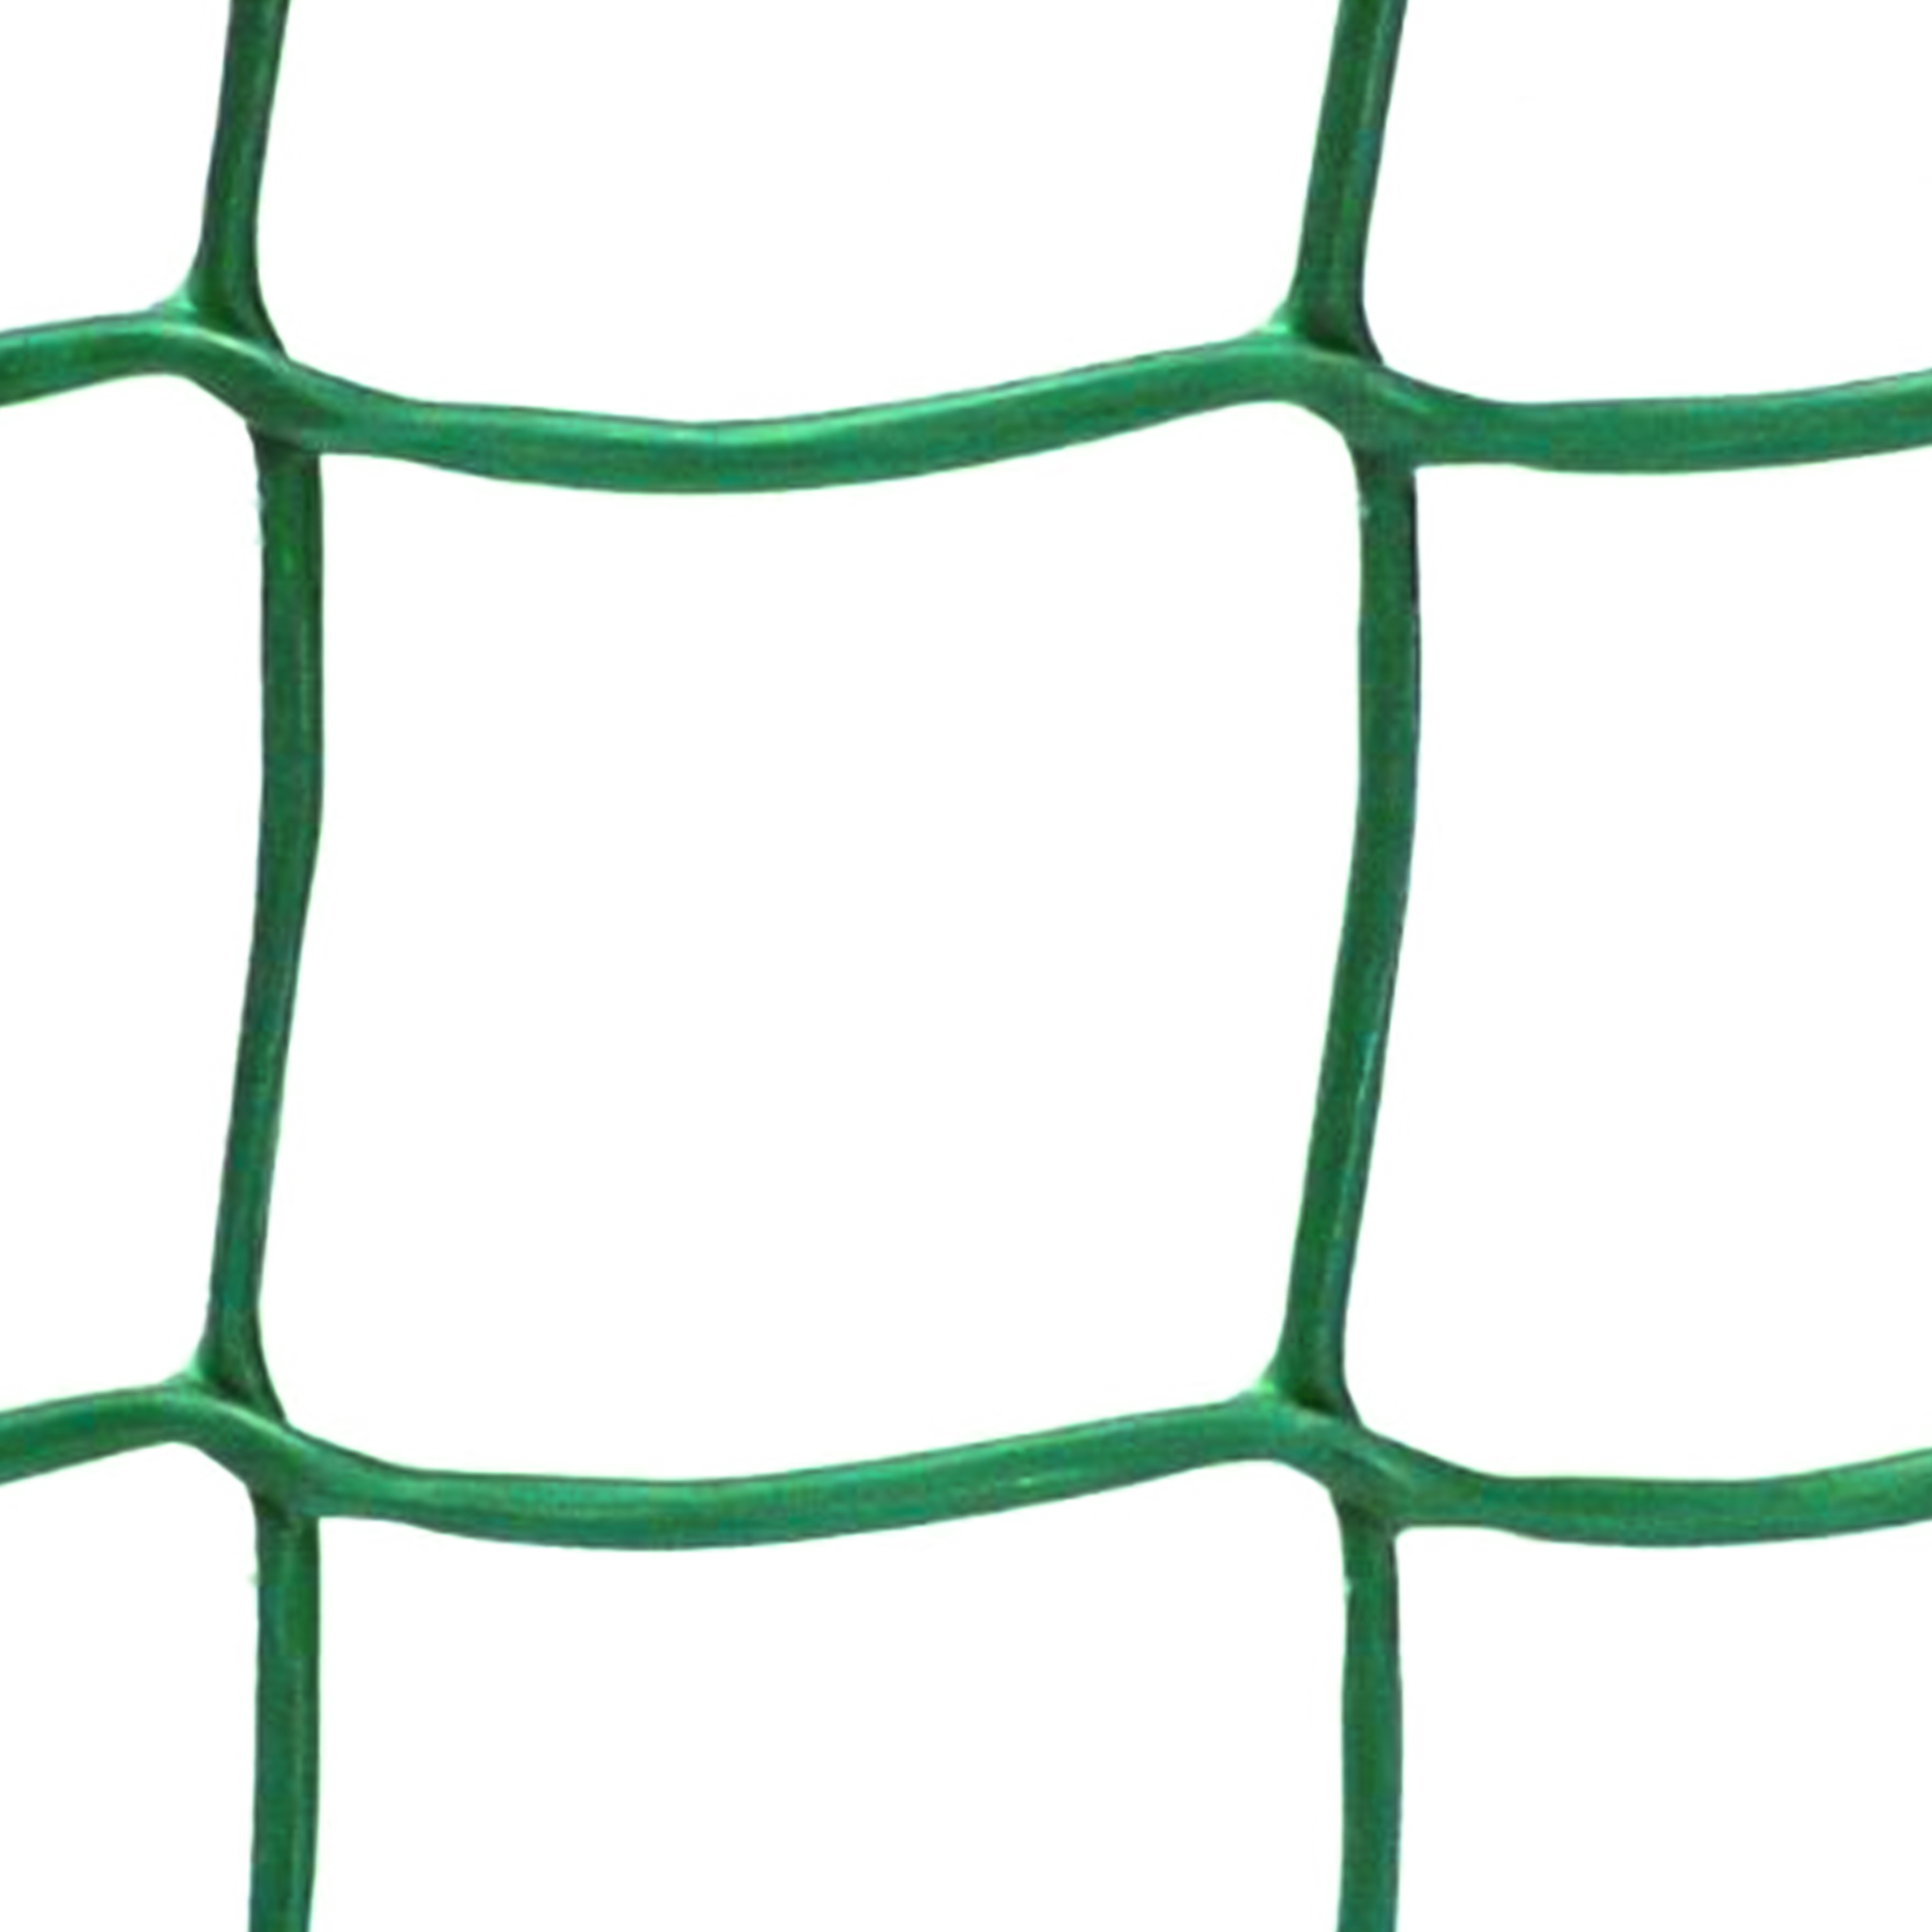 Green Plastic Coated Garden_net